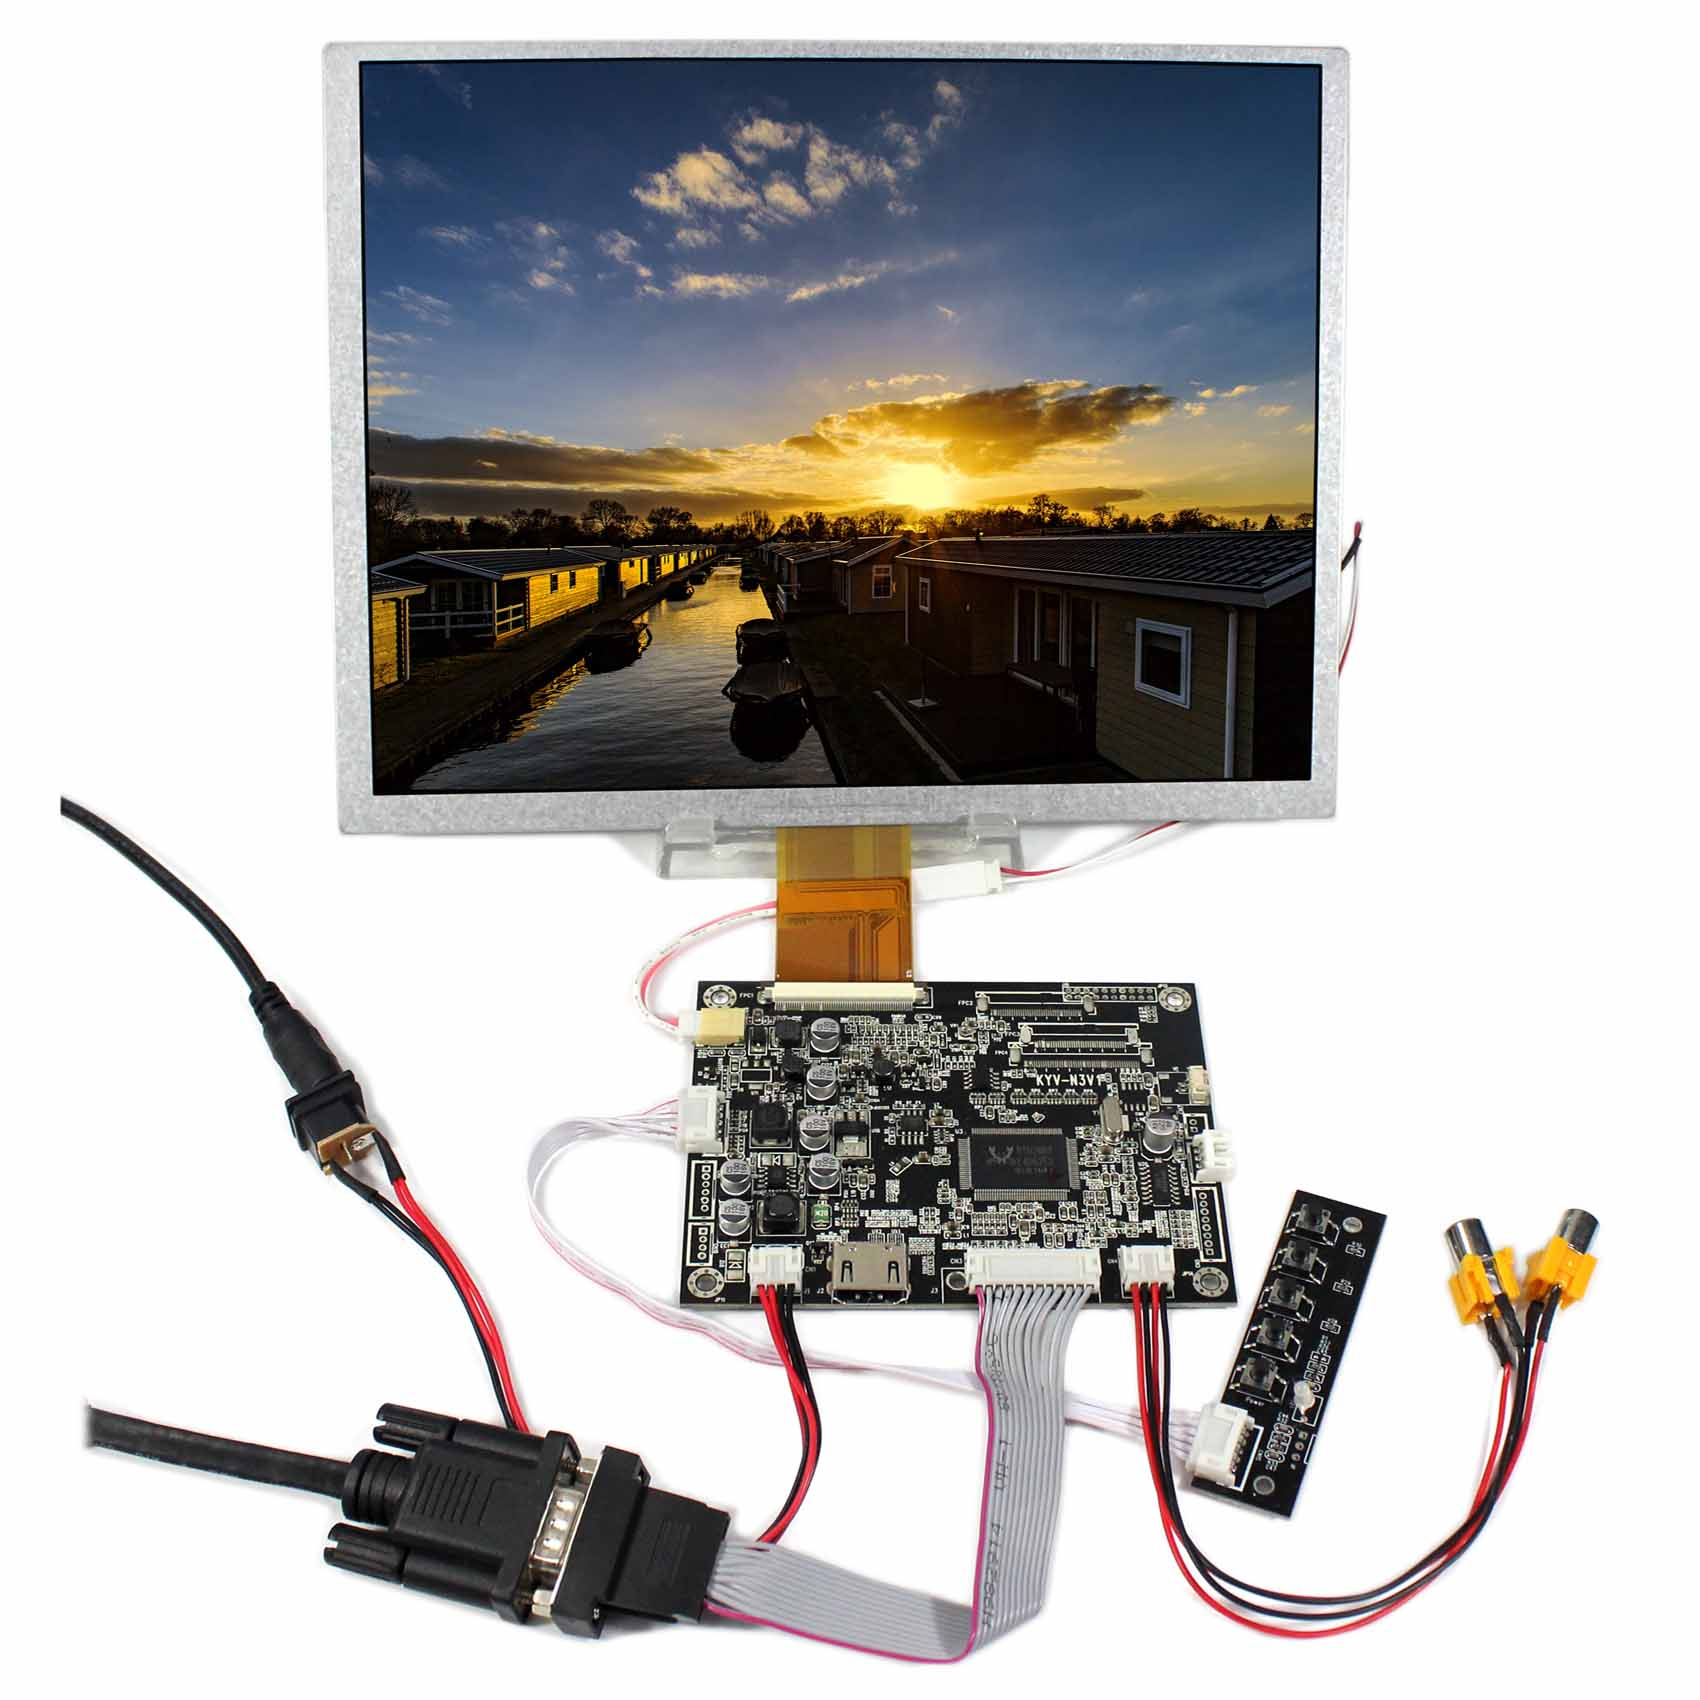 HDMI VGA AV Audio LCD Controller Board KYV-N3 V1 10.4inch LSA40AT9001 800x600 LCD Panel